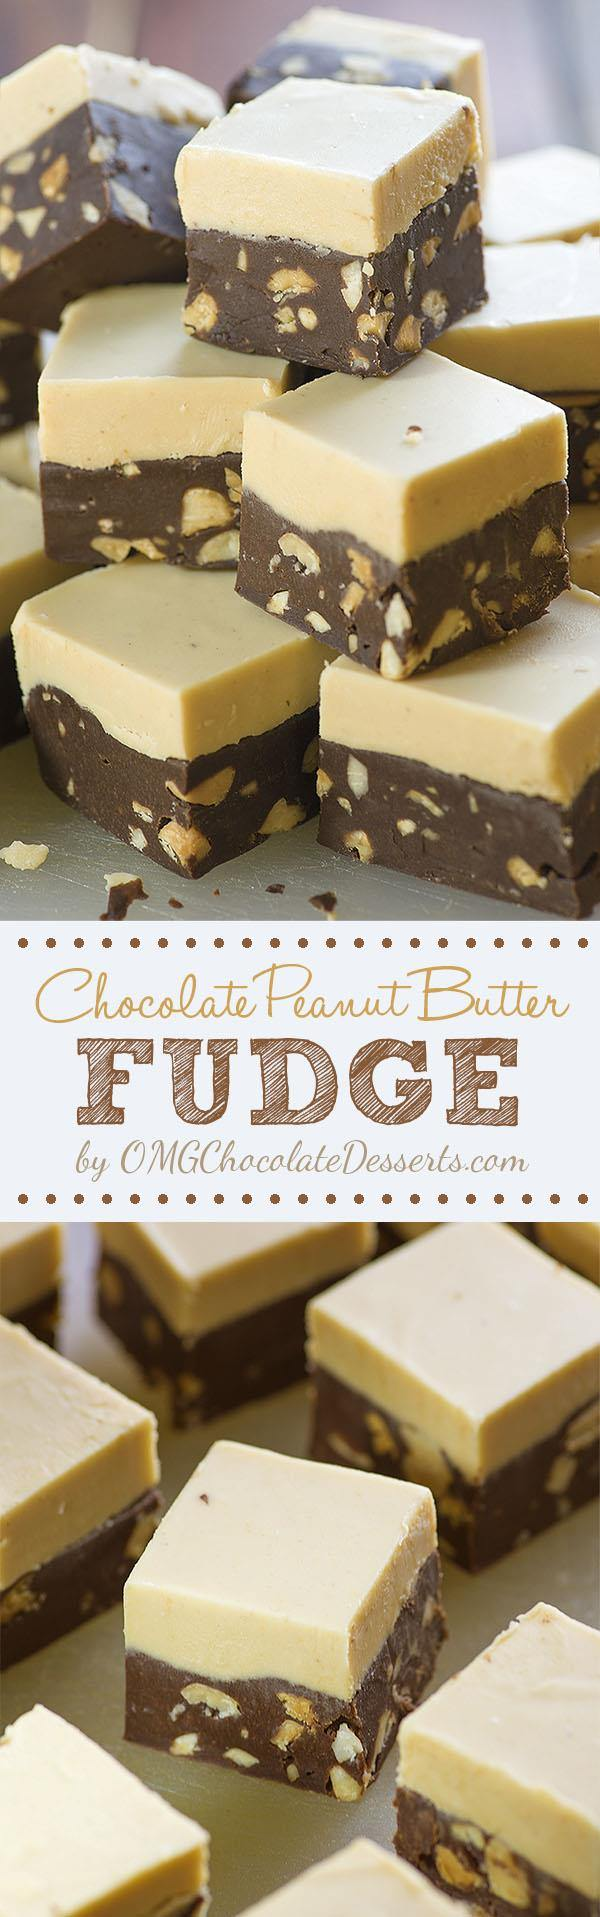 Chocolate Peanut Butter Fudge – can you stay indifferent to these delicious layers of peanut butter and chocolate? If not, you will need just 10 minutes of kitchen work and after that, the enjoyment really begins!!!